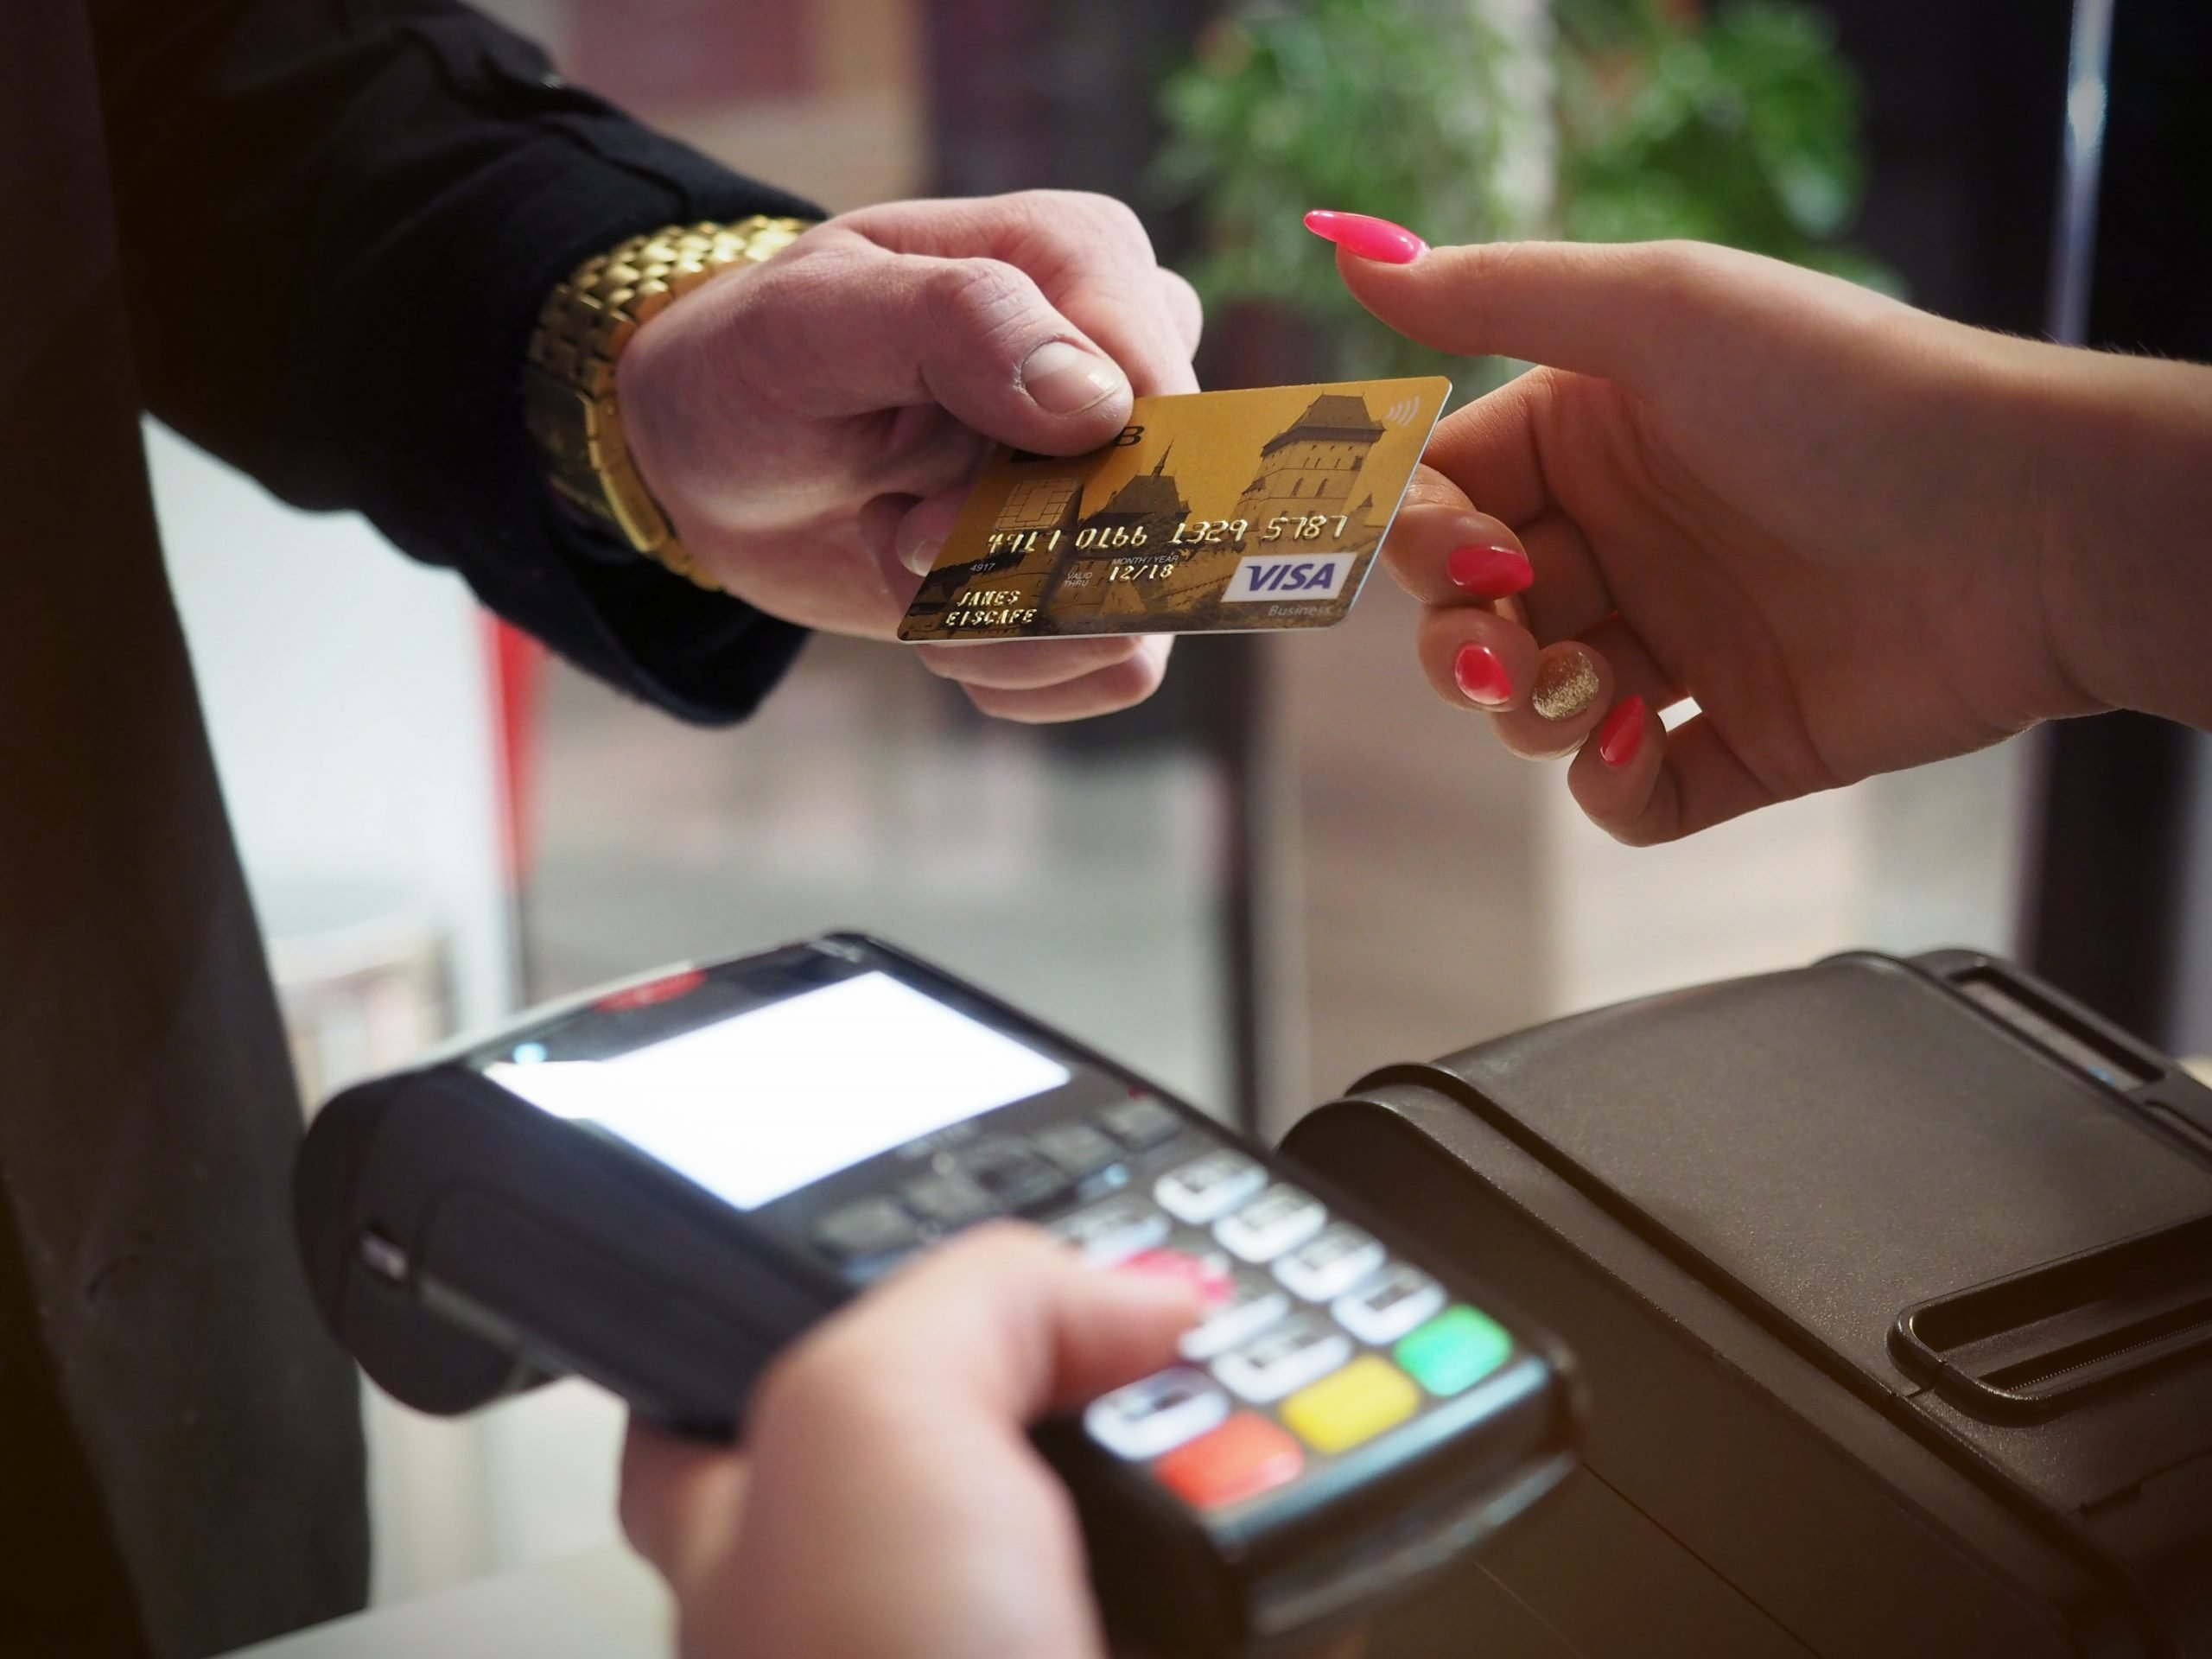 We offer solutions that accept all credit card payment types